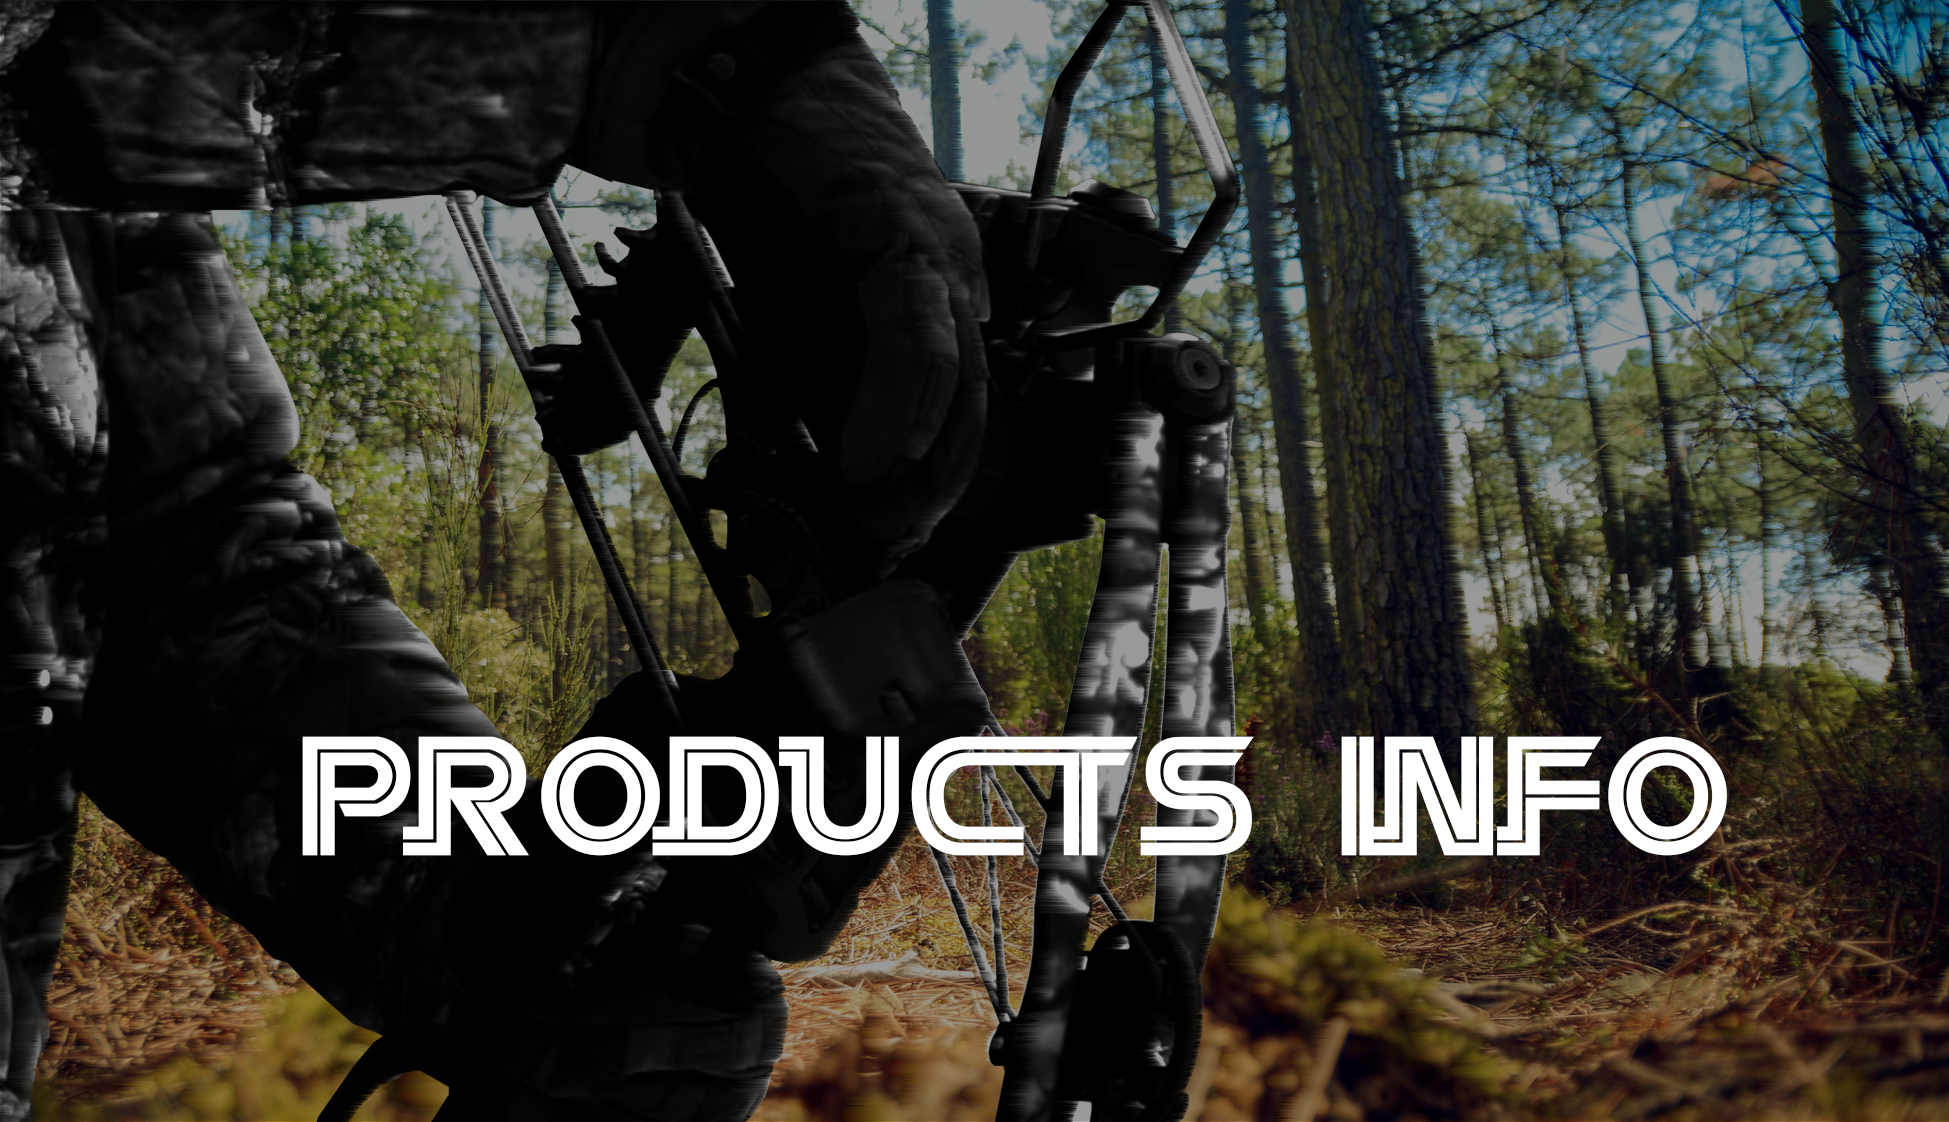 Products INTRODUCTION